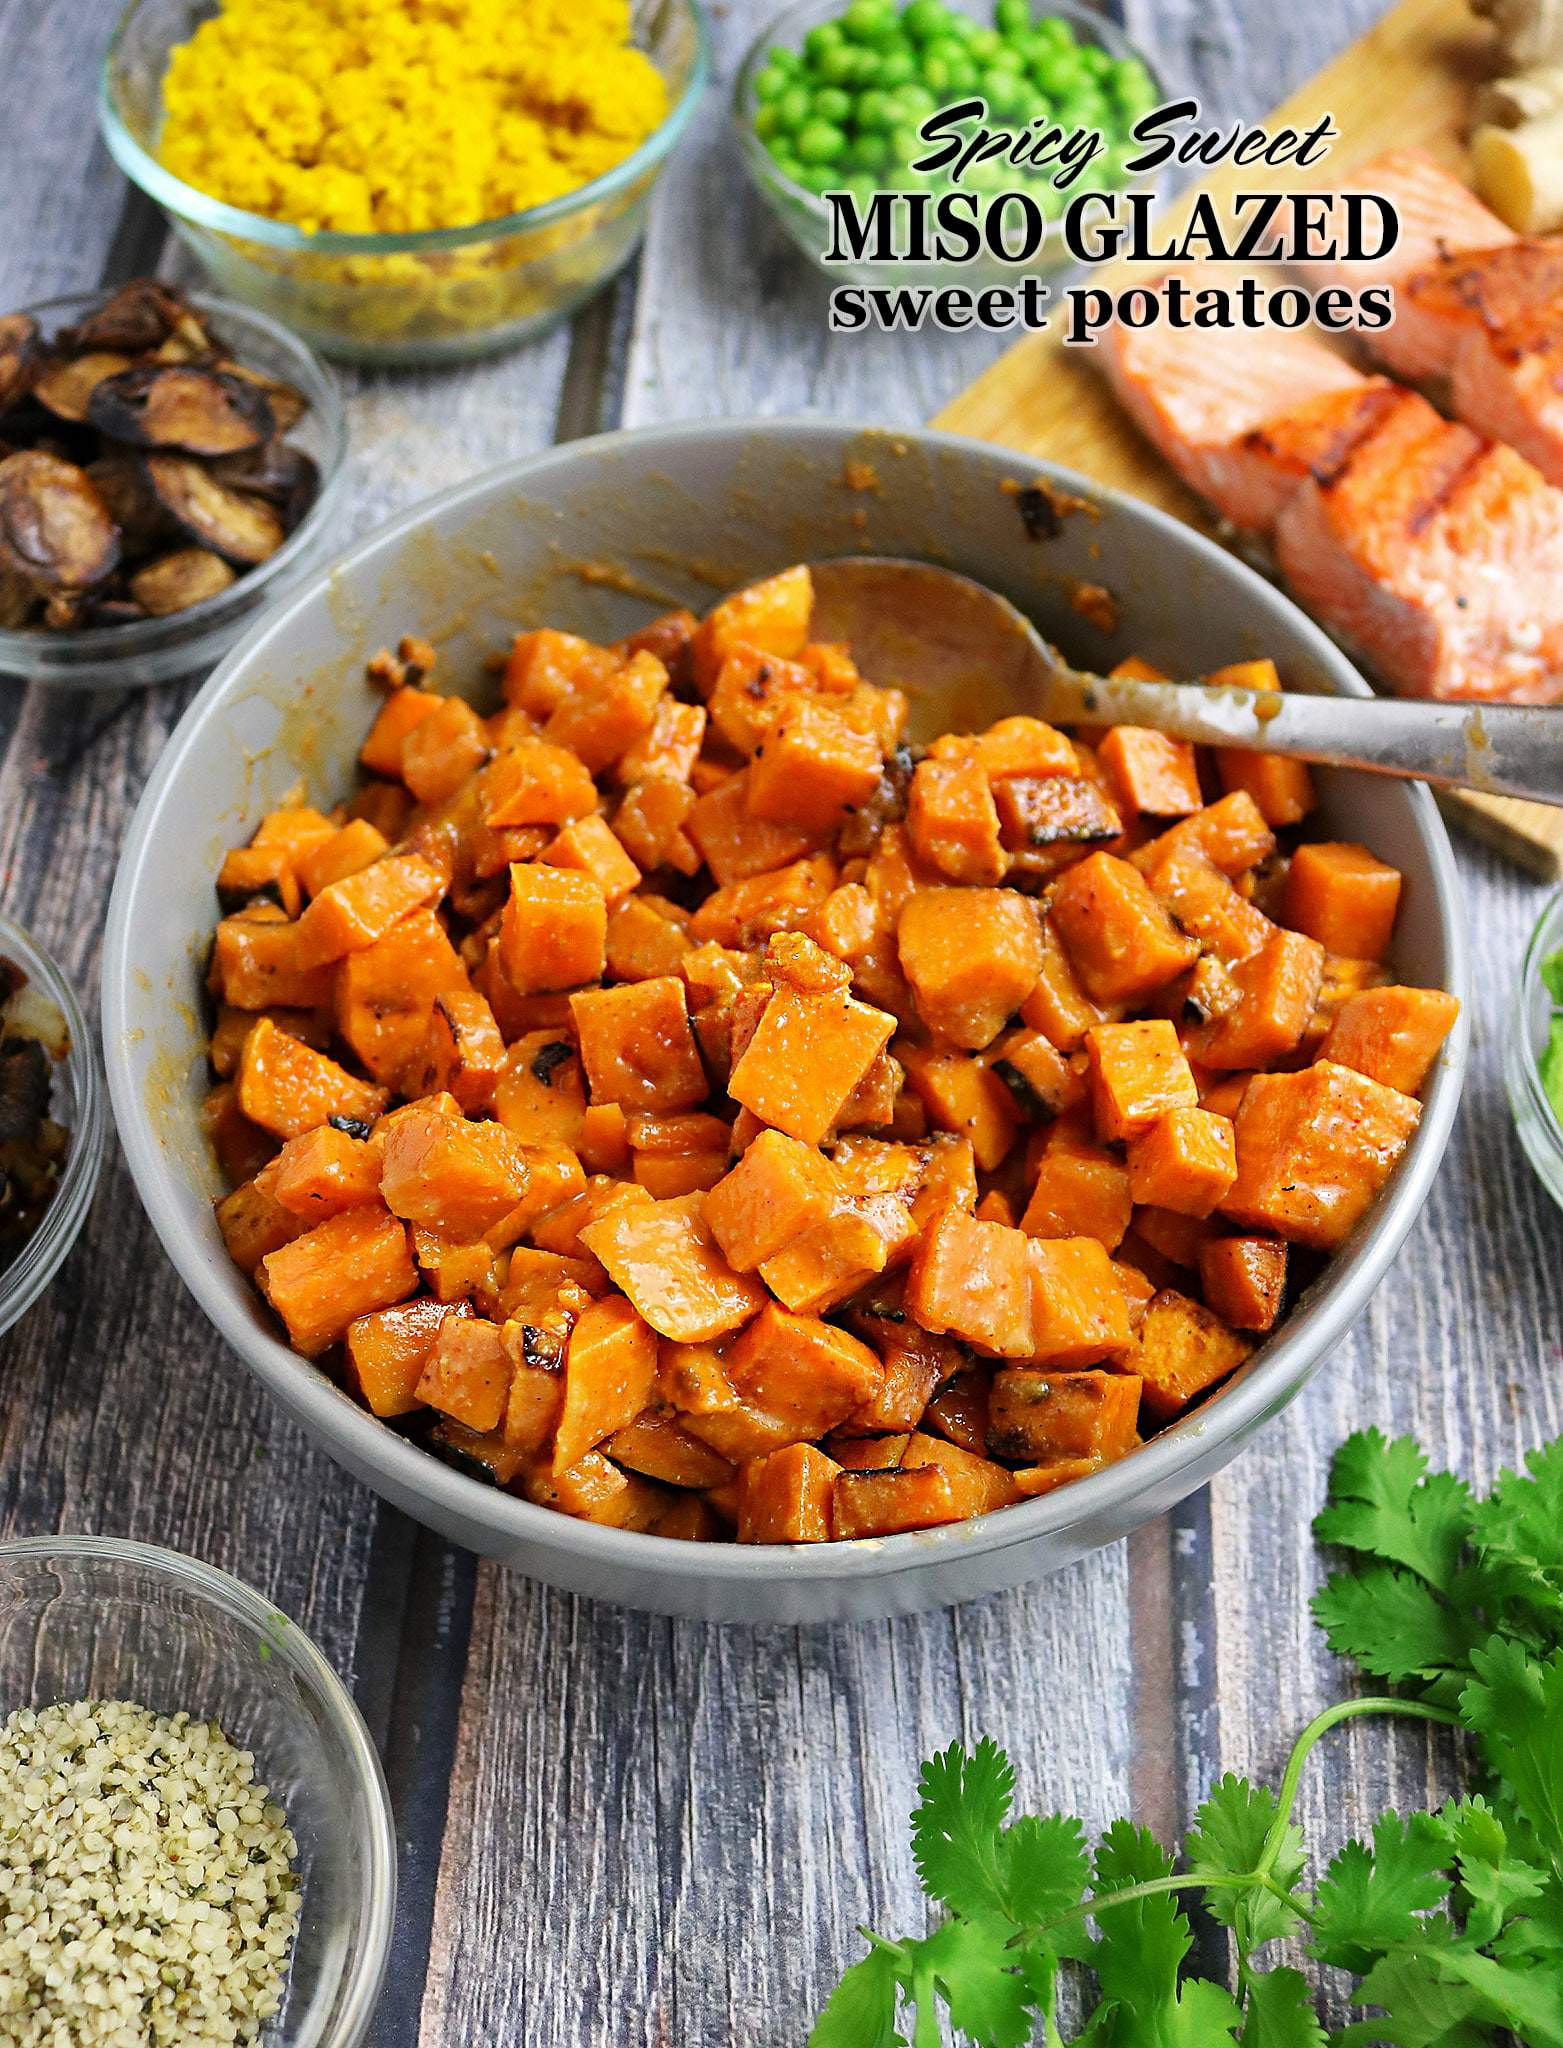 Spicy Sweet Miso Glazed Sweet Potatoes Bowls